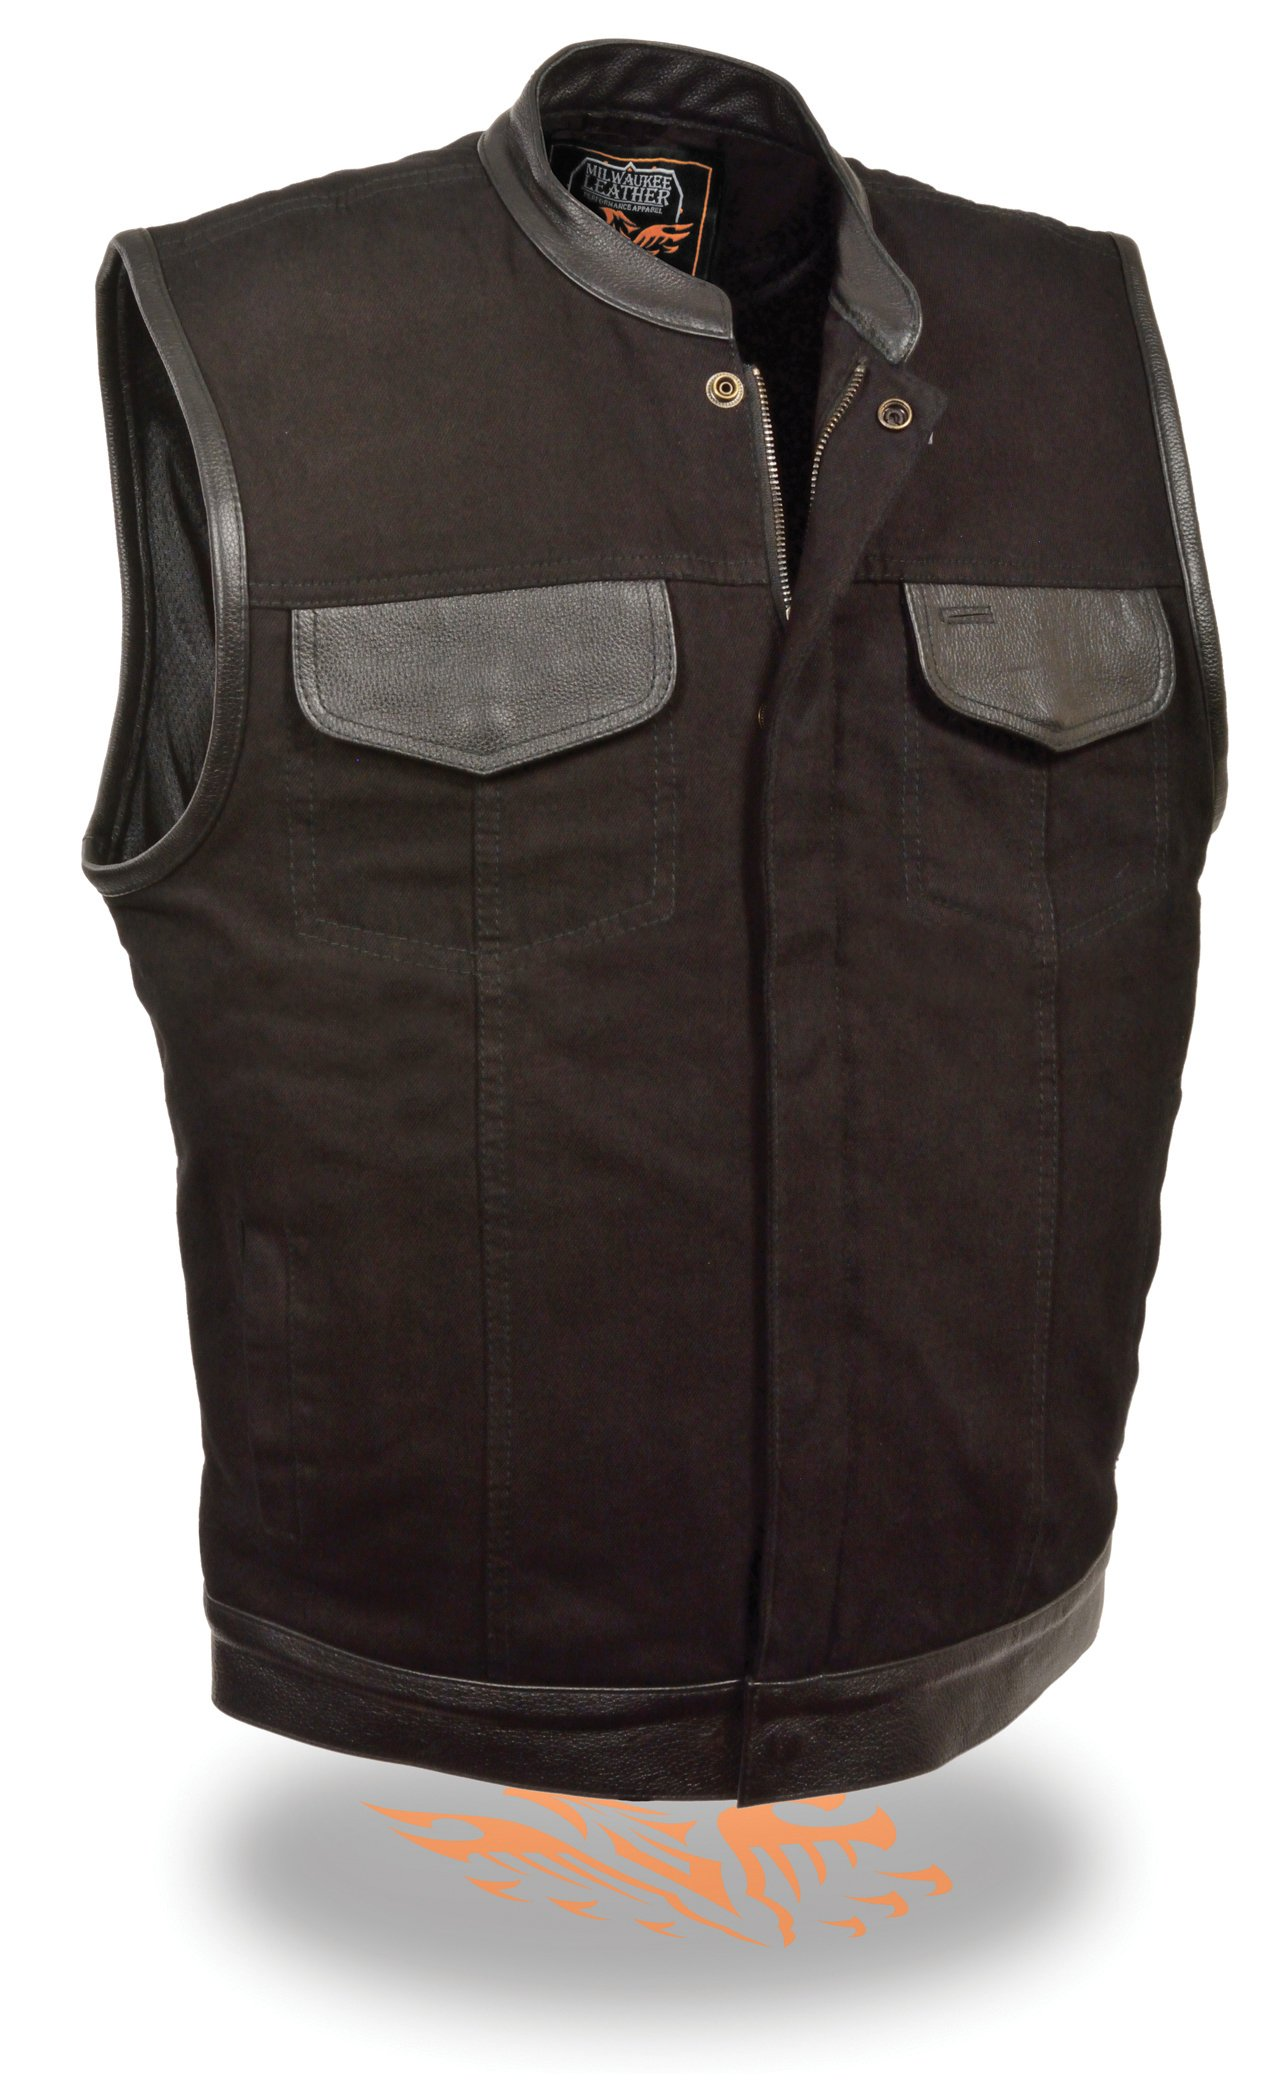 The Ultimate One Stop Shop for All Club Style Zipper Front Vests - All Varieties of Club Cut Vests Leather & Denim (4X - Big, Leather Trim) by Milwaukee (Image #1)